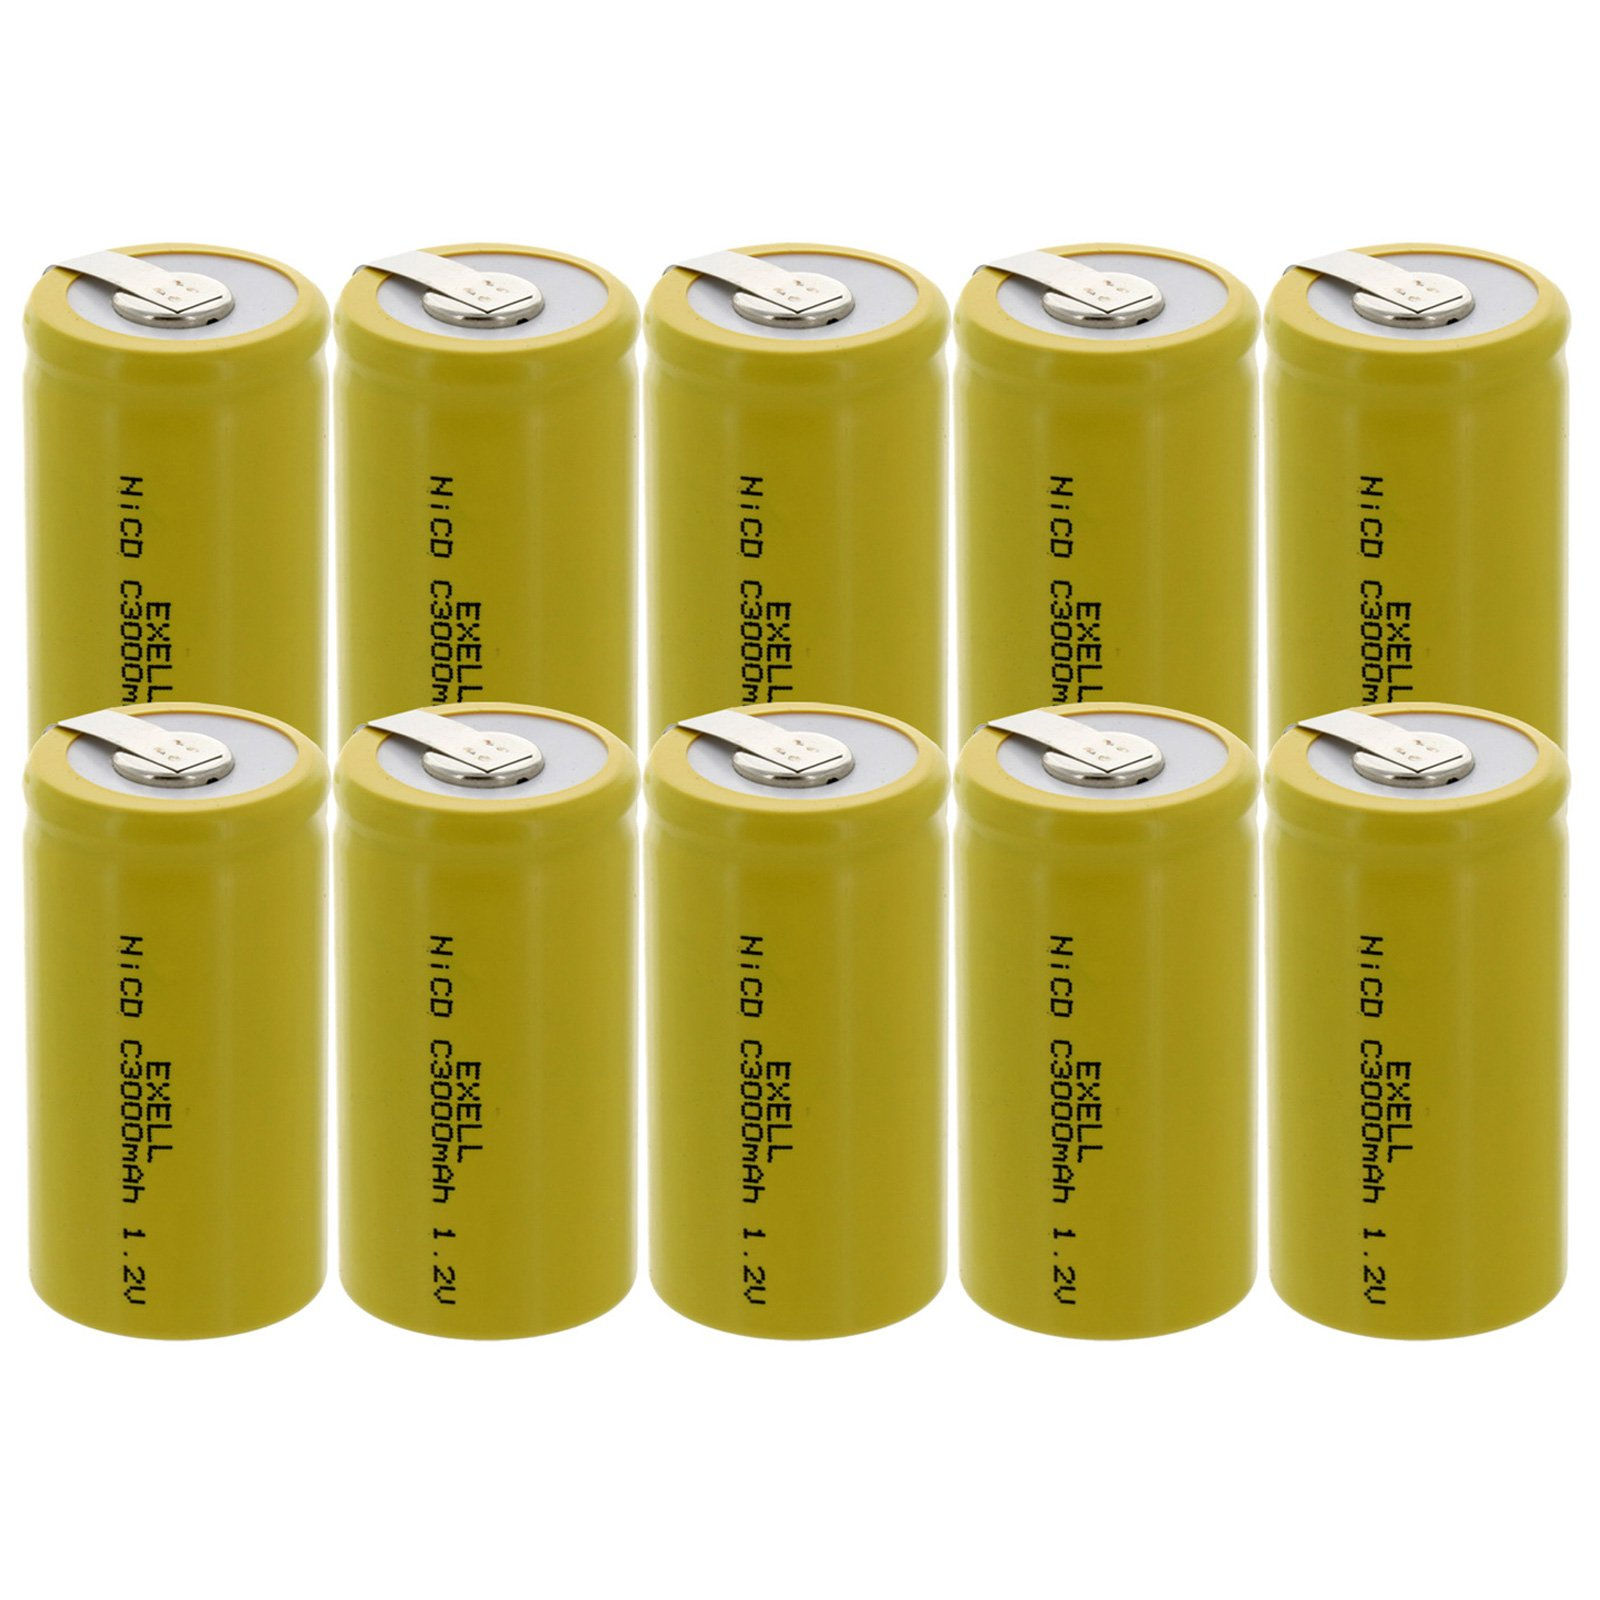 10x Exell C Size 1.2V 3000mAh NiCD Rechargeable Batteries with Tabs for high power static applications (Telecoms, UPS and Smart grid), electric mopeds, meters, radios, RC devices, electric tools by Exell Battery